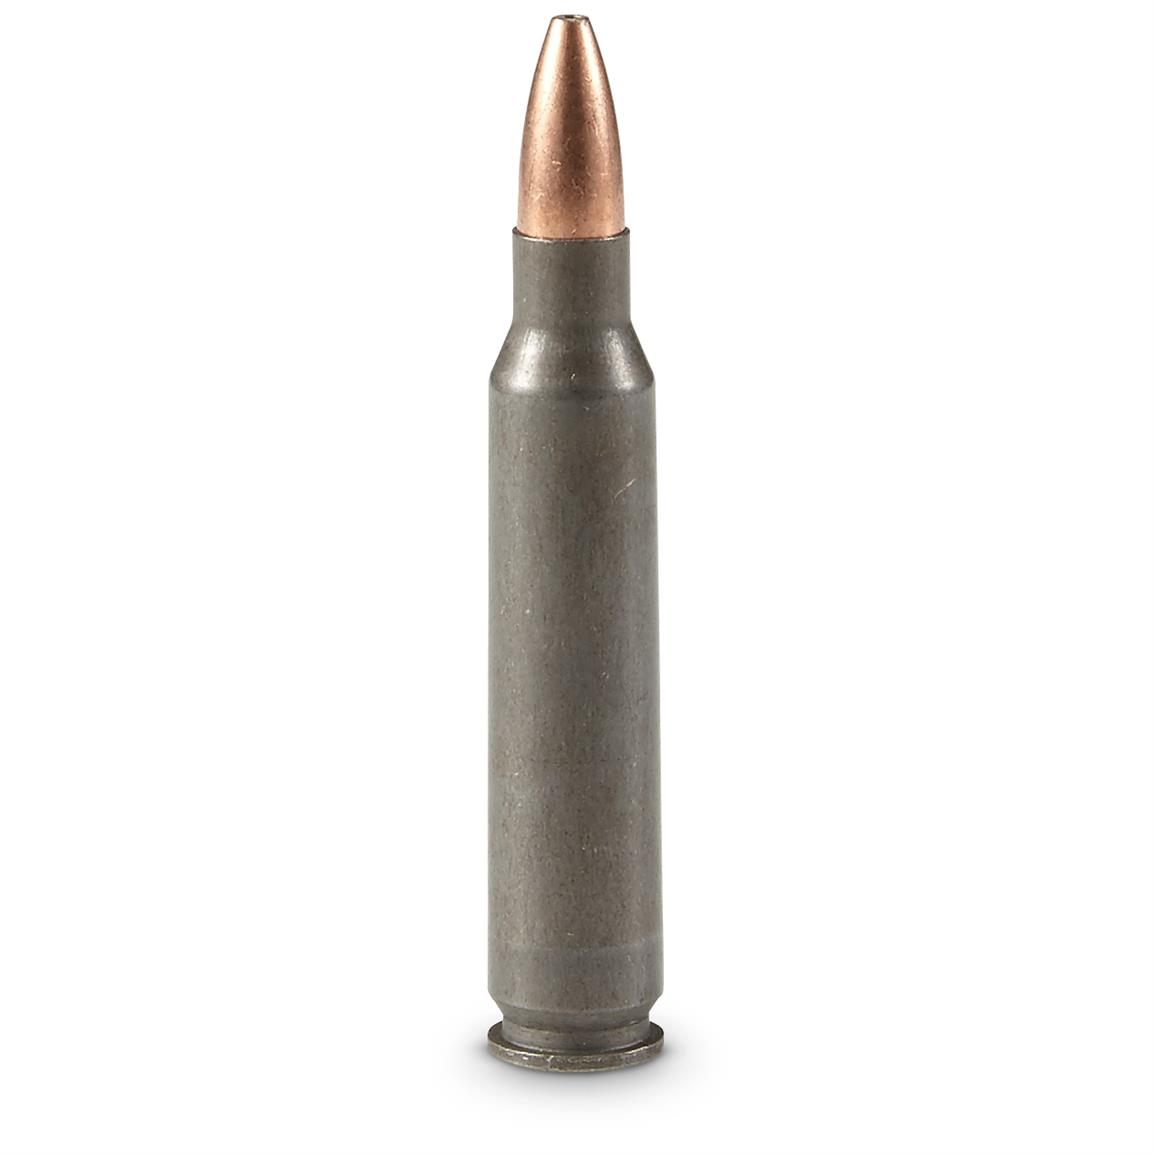 .223 Remington 55 Grain HP Ammo